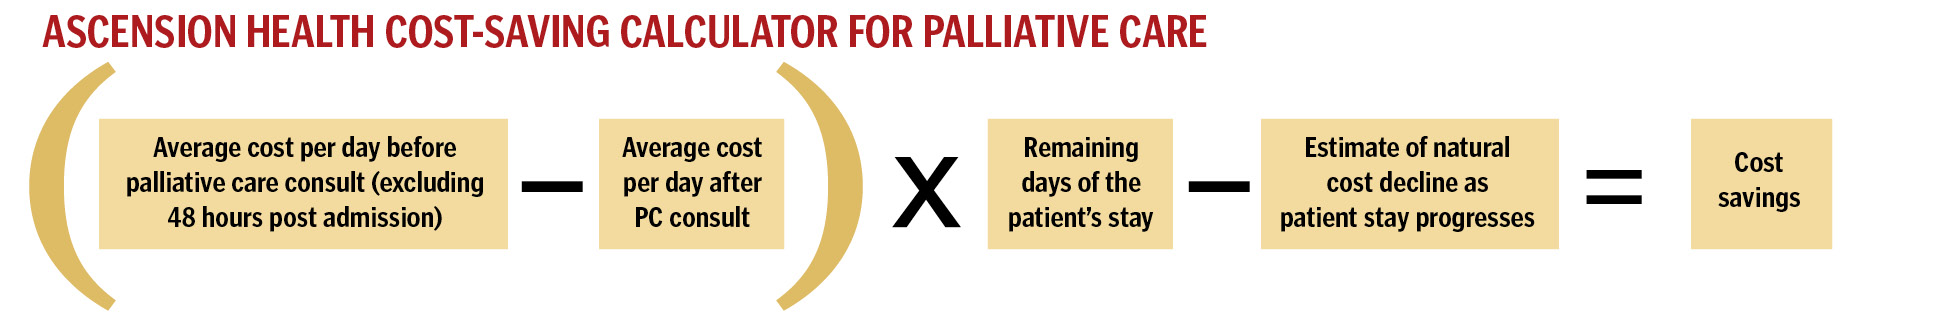 How Four Catholic Systems Approach Palliative Care